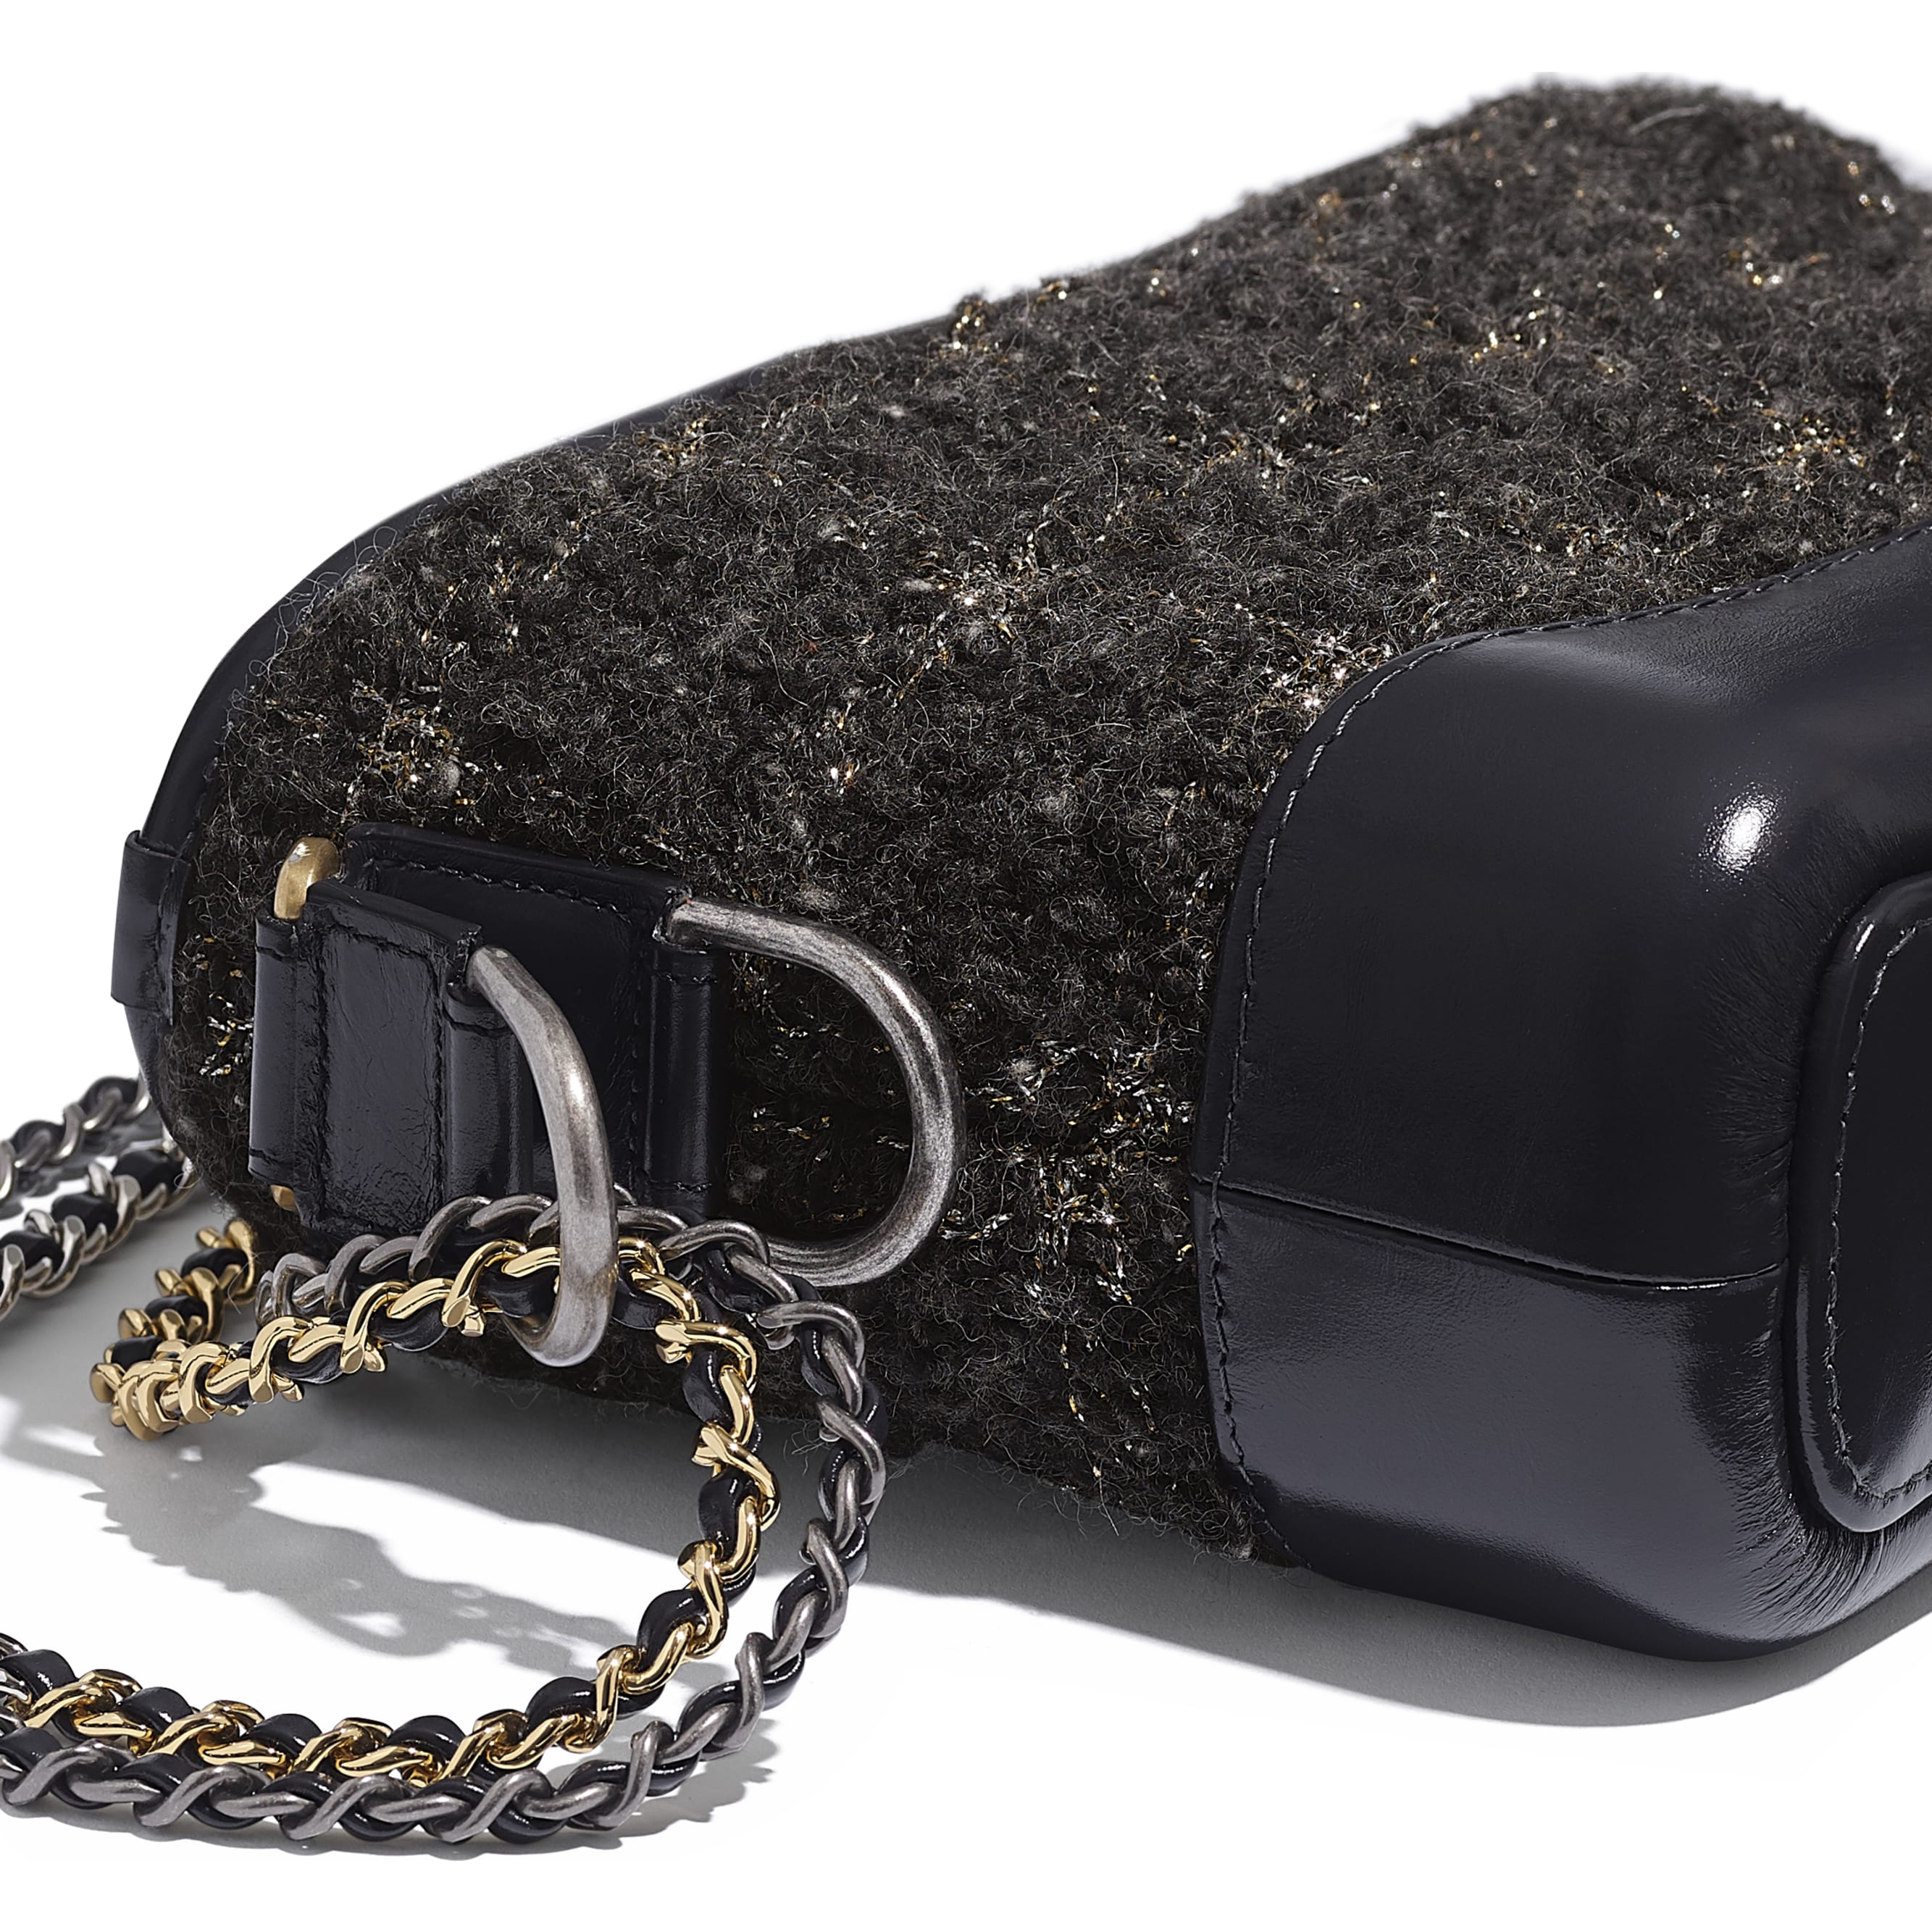 CHANEL'S GABRIELLE Small Hobo Bag - Gray, Golden & Silver - Wool Tweed, Calfskin, Gold-Tone & Silver-Tone Metal - Extra view - see standard sized version